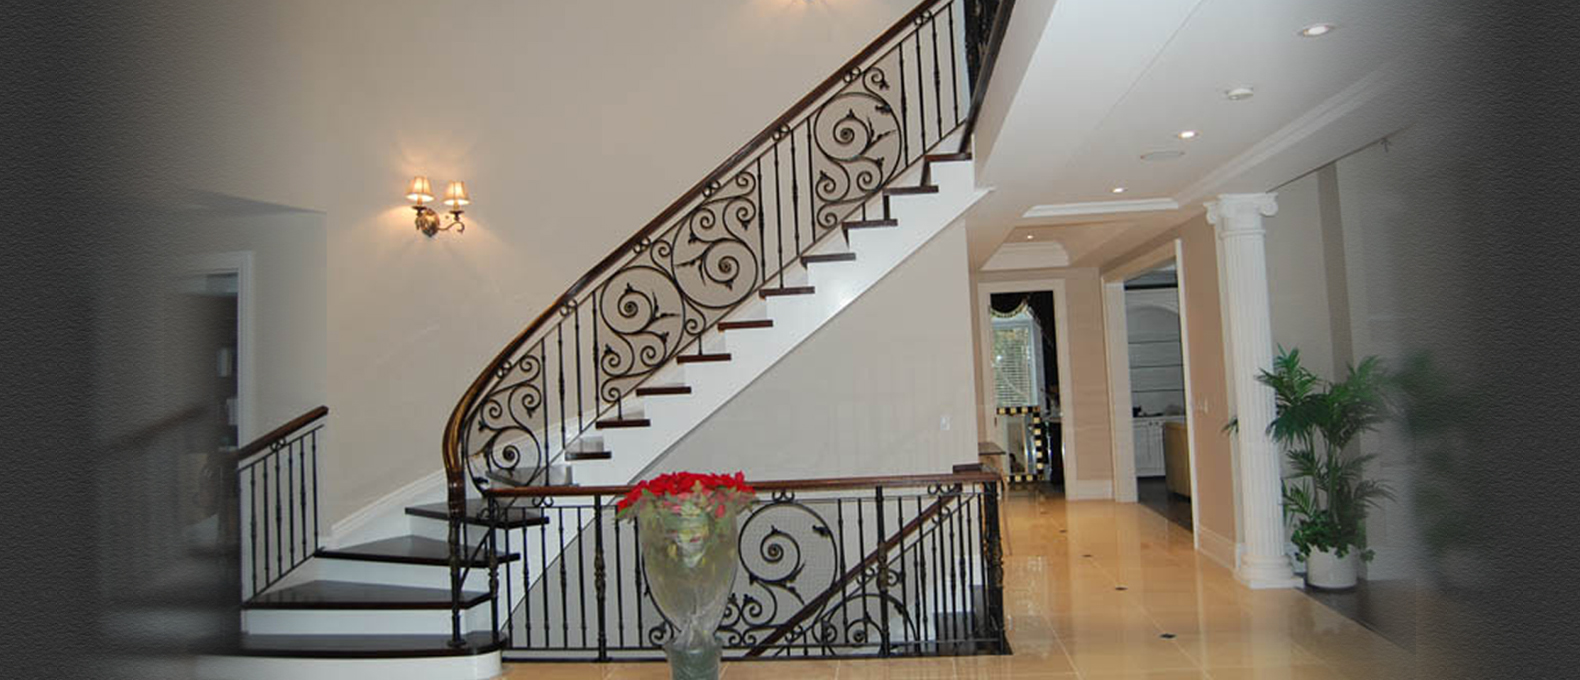 a 1 railings Slide_custom railings